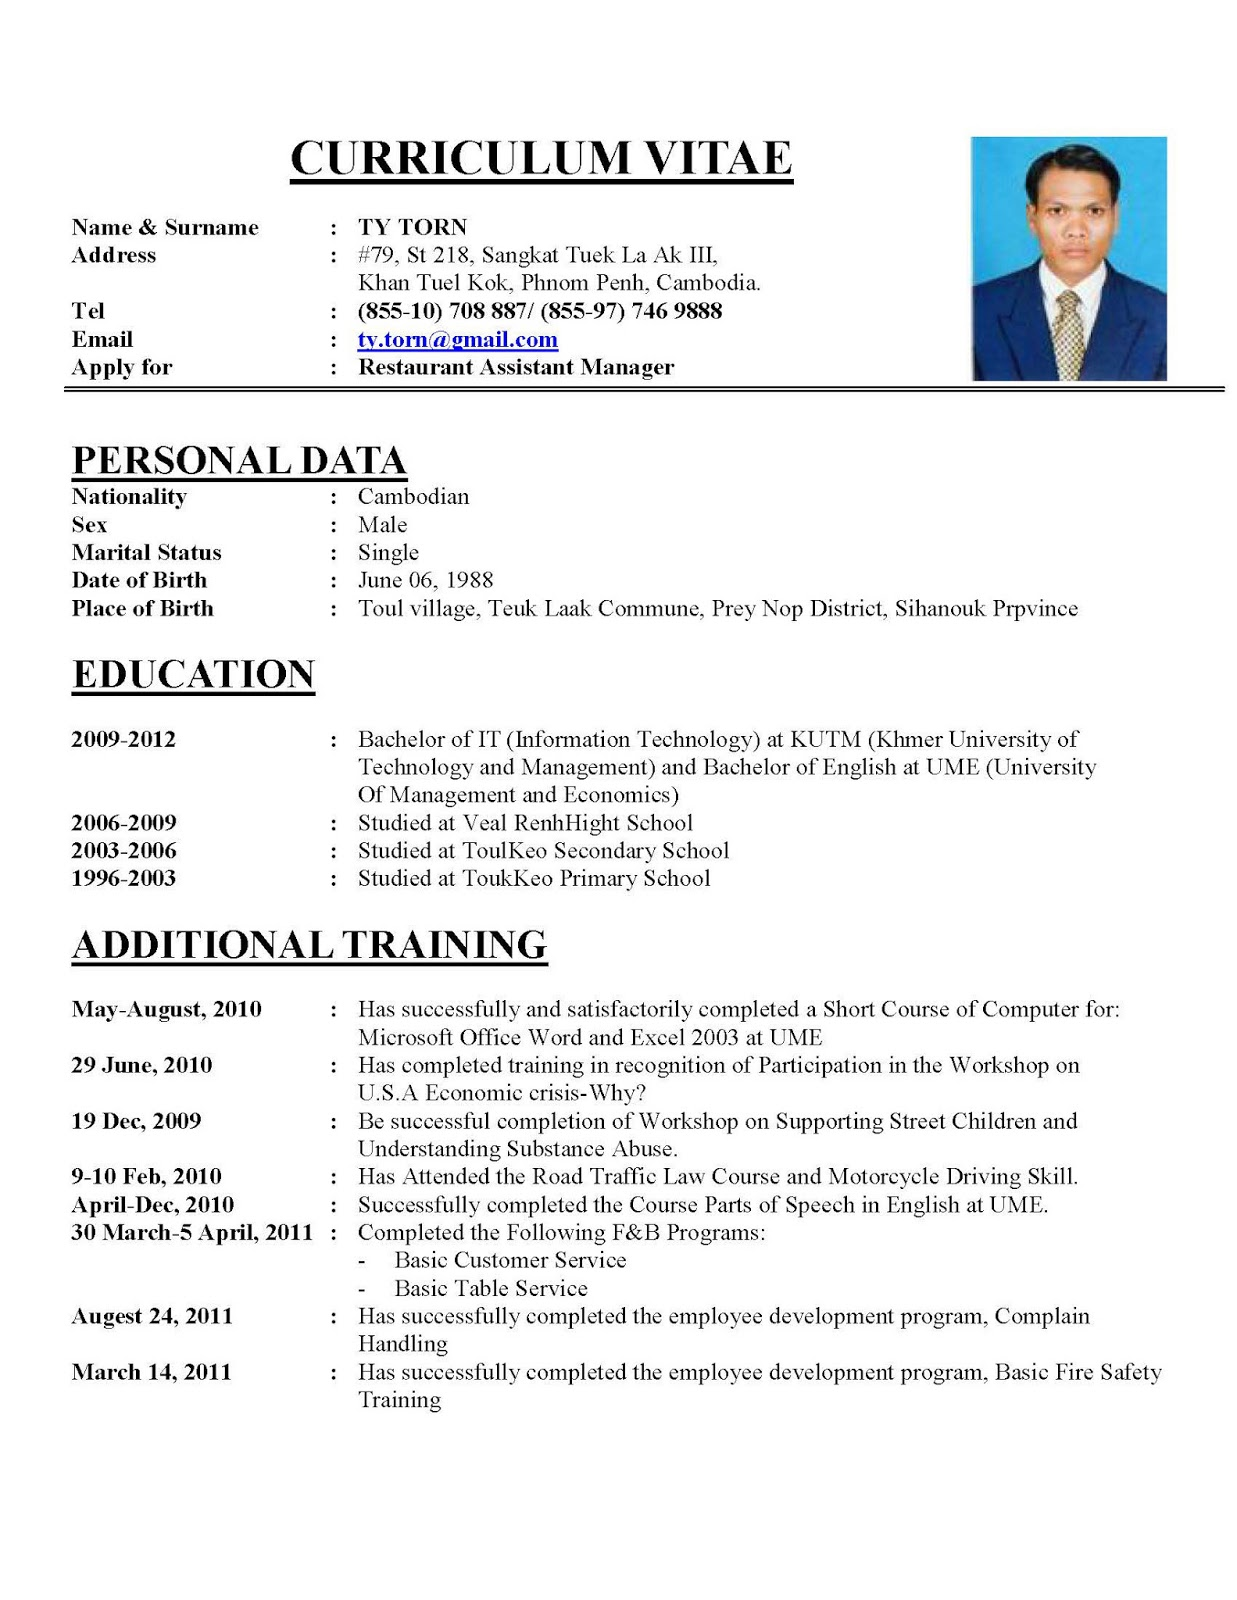 sample cv for law jobs resume builder sample cv for law jobs sample waiter cv sample - Cv Resume Example Jobs